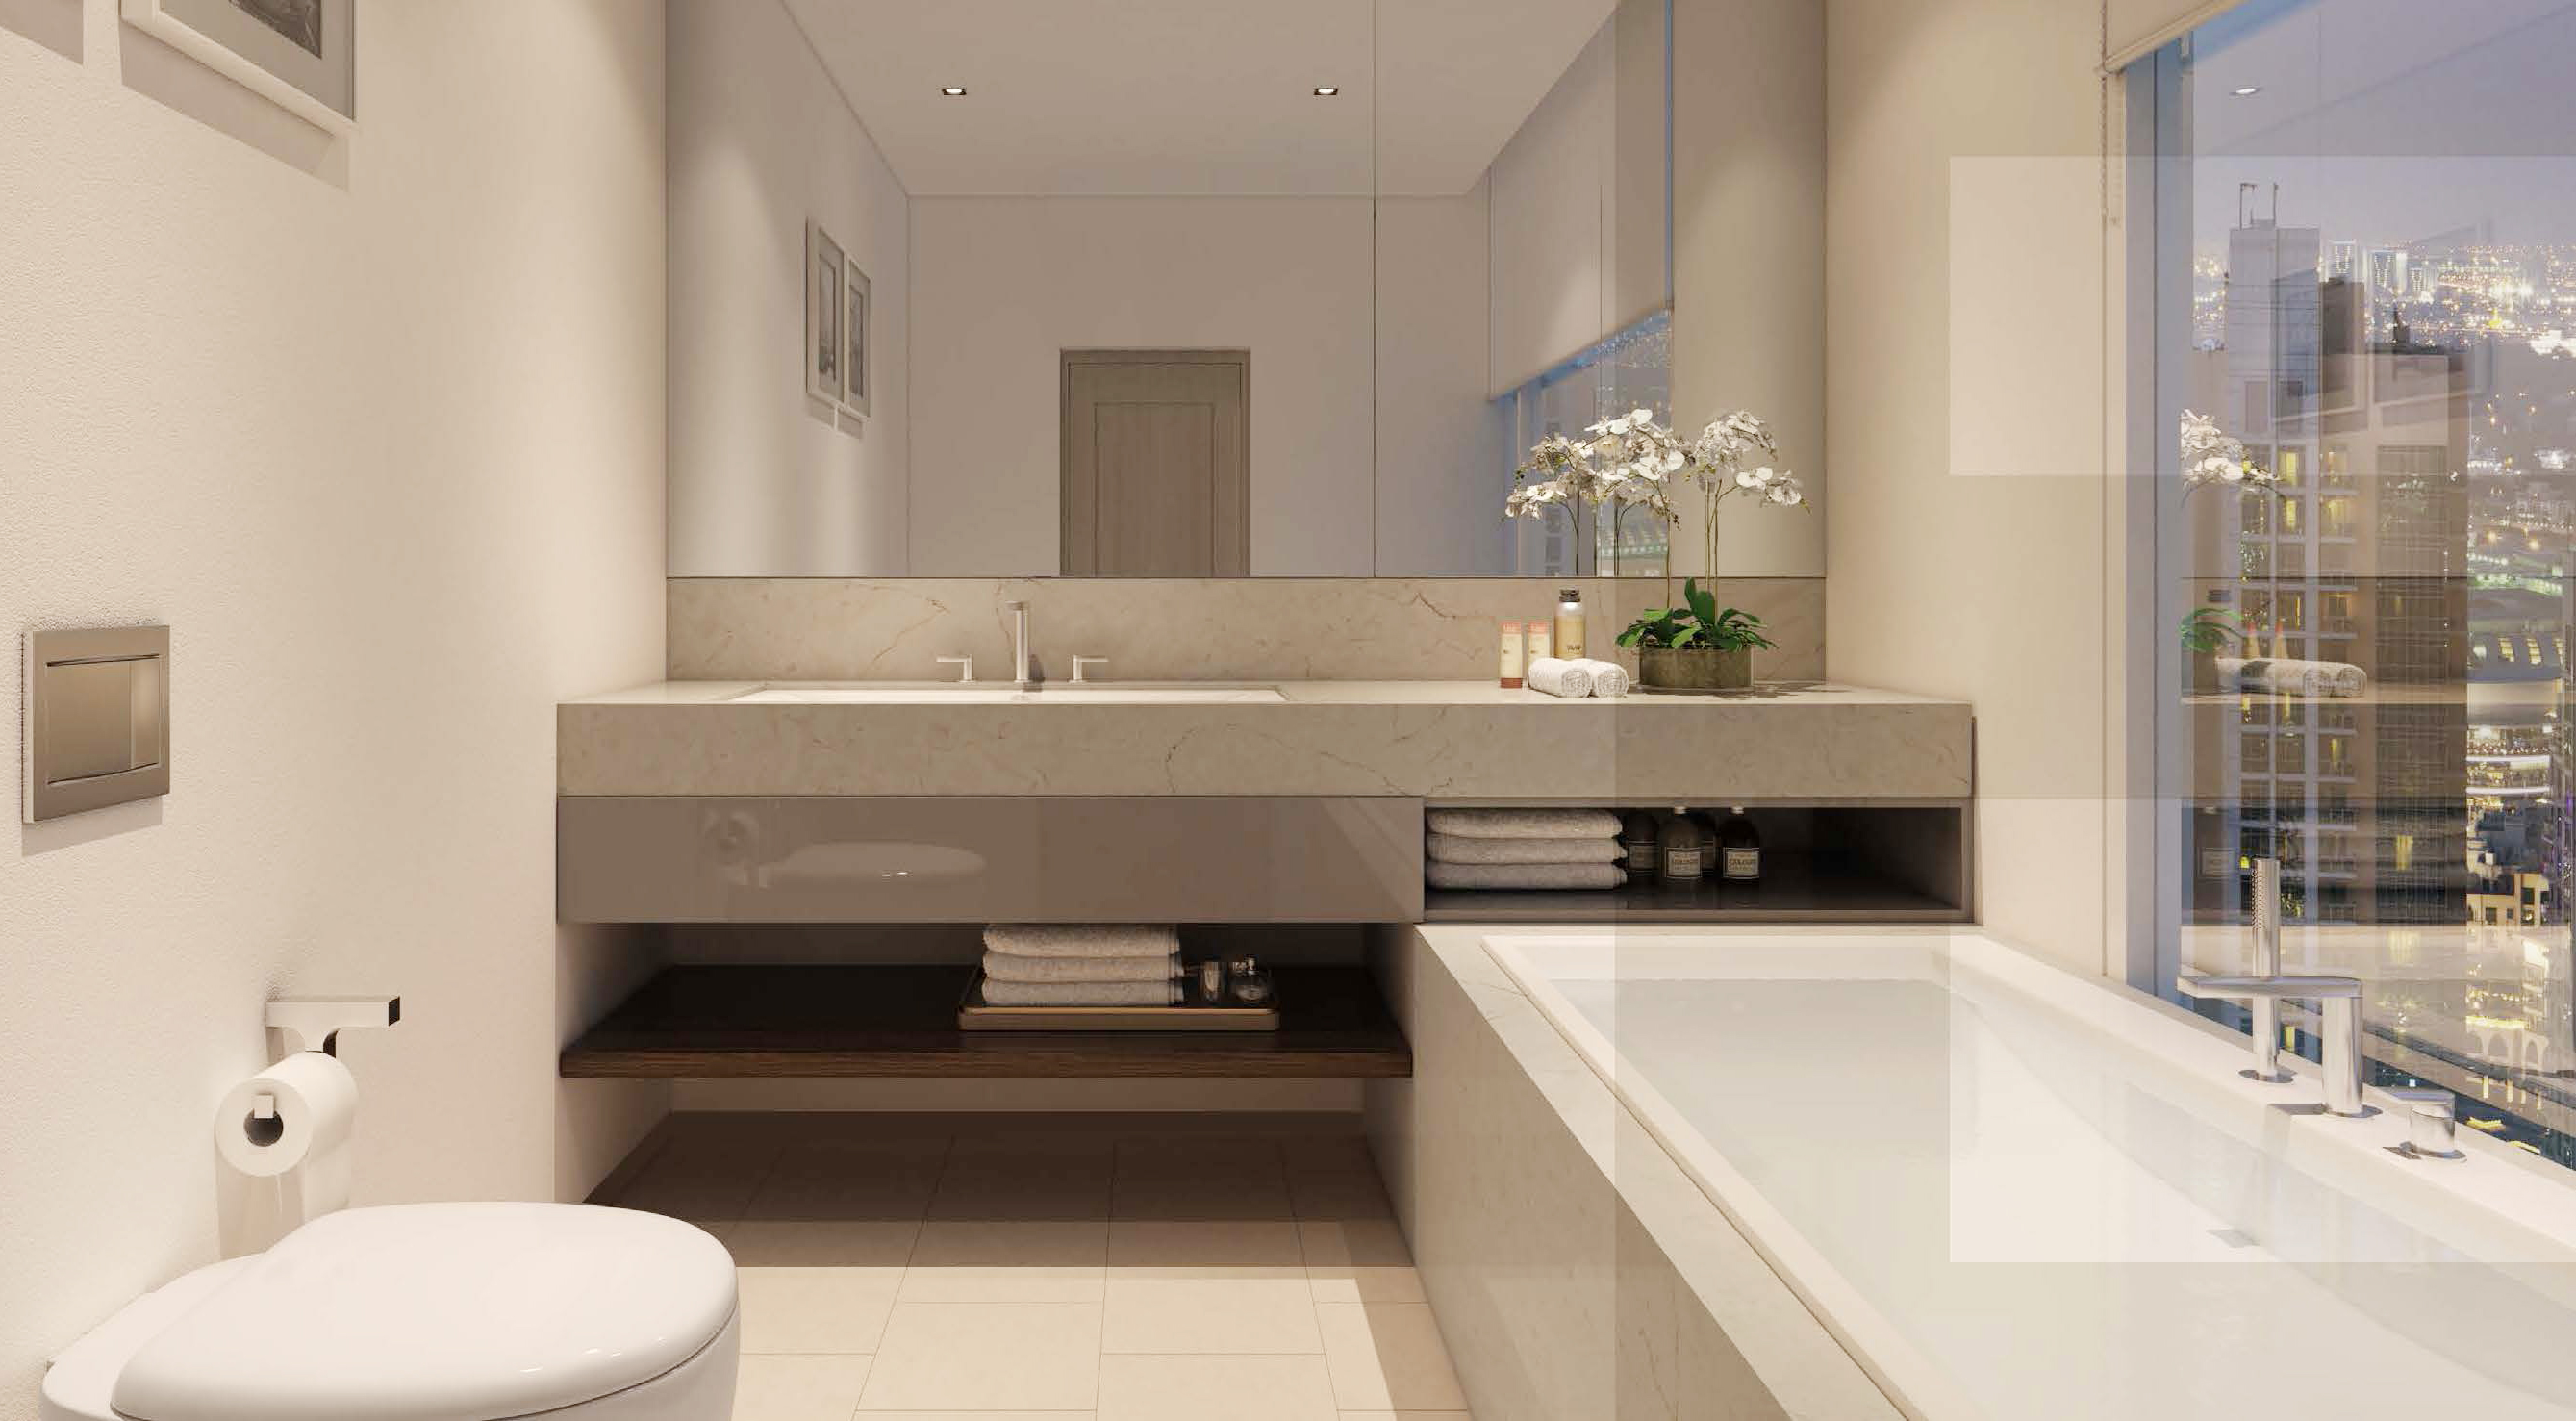 find homes large full single one to studio for apartments rental cheap places let rent property bedroom size of